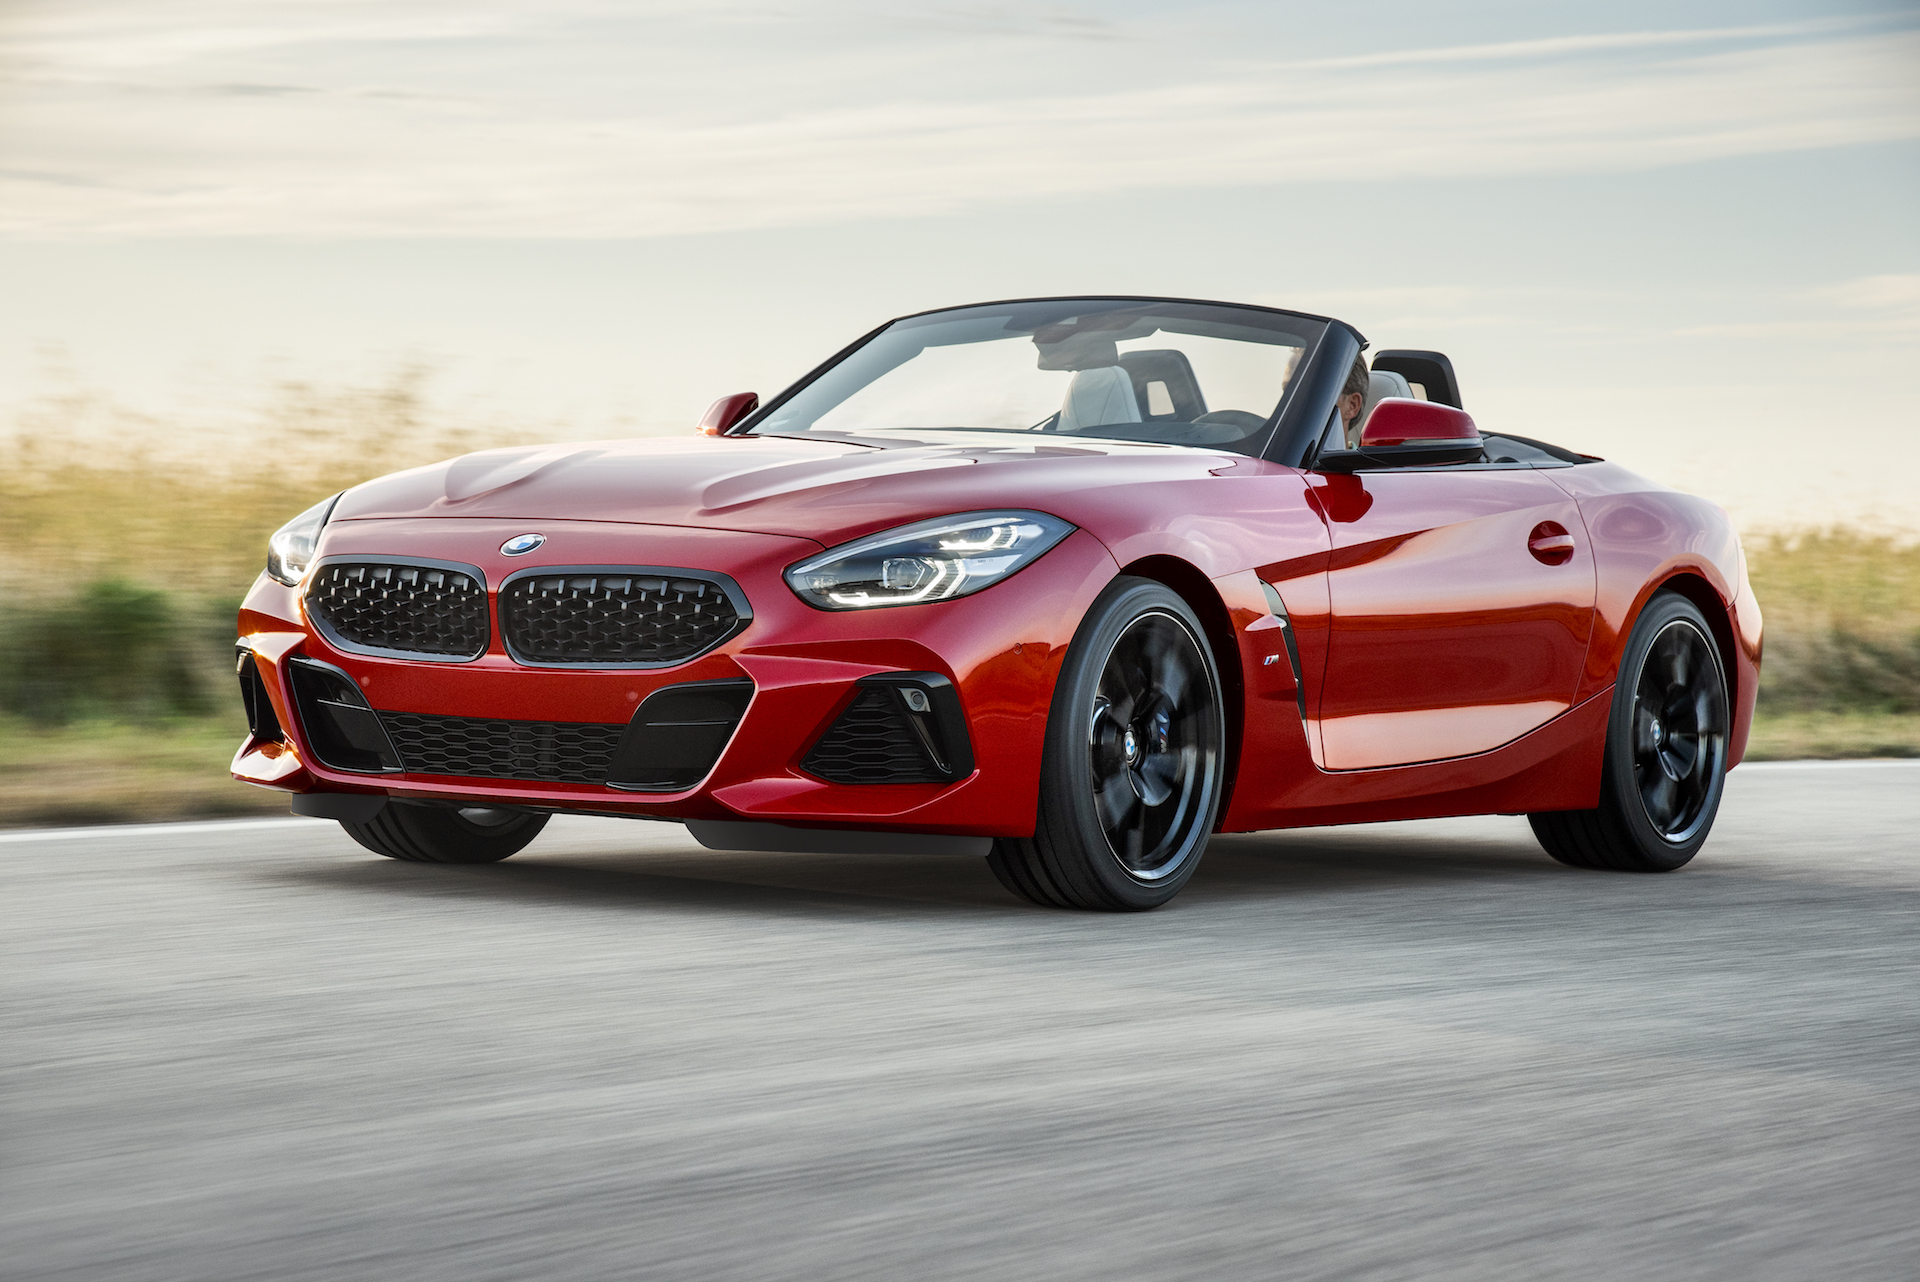 55 The Best 2019 BMW Z4 Roadster Spy Shoot